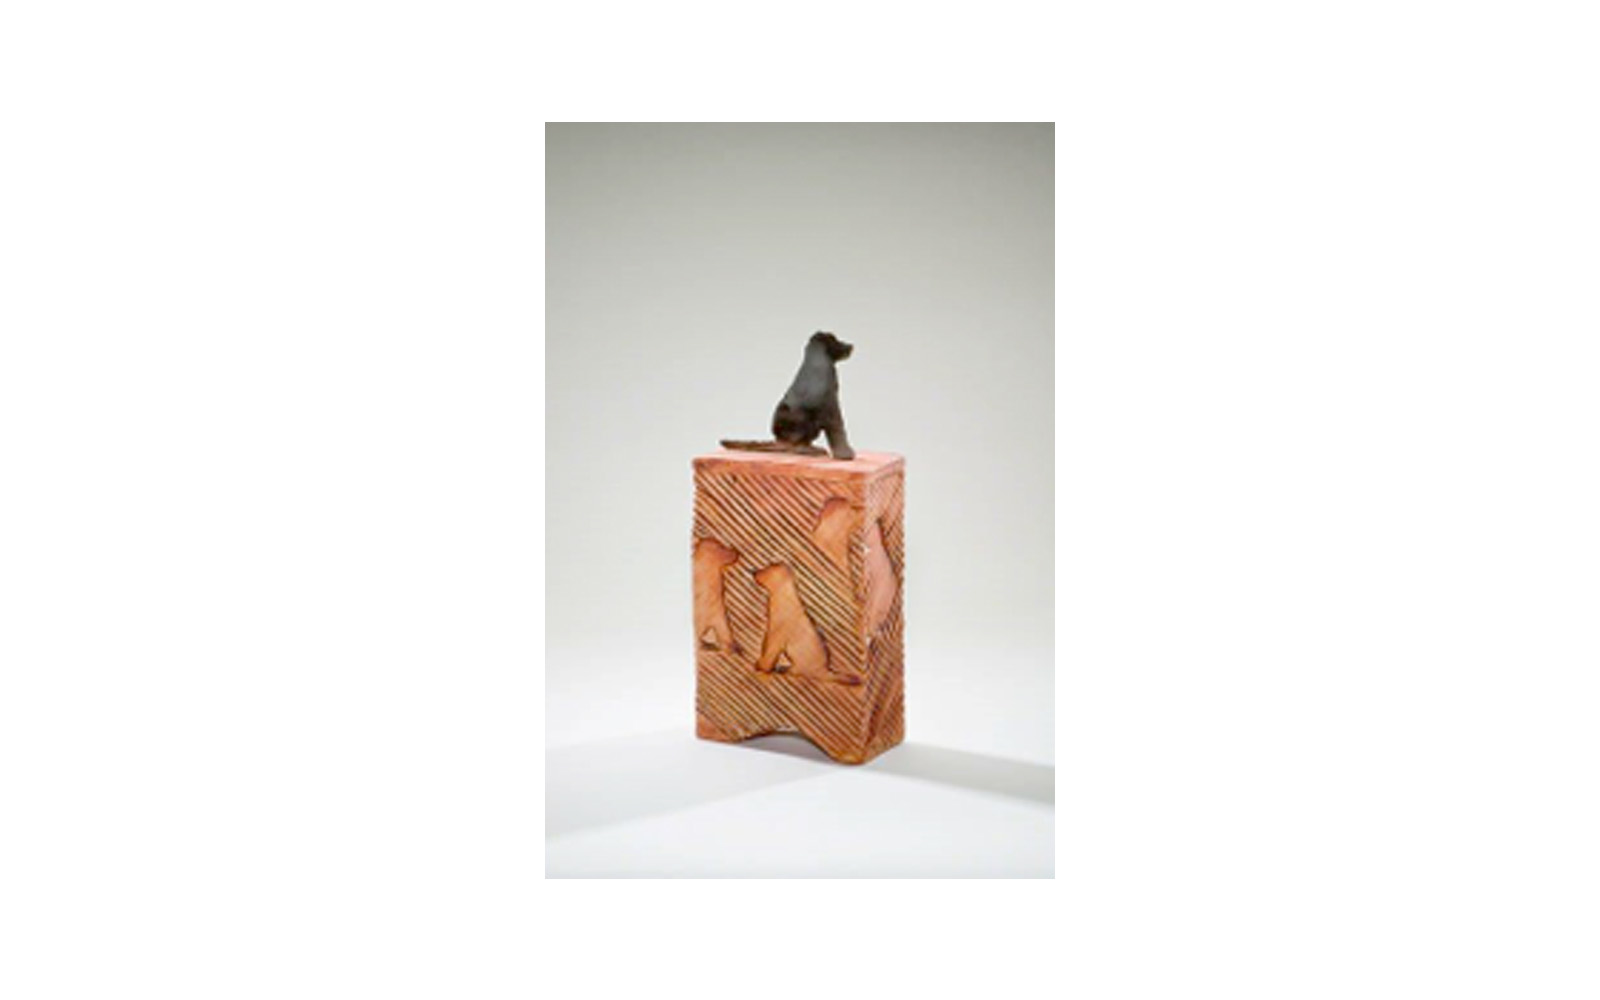 """Stay Ceramic Dog Cremation Urn    This ceramic urn is Unique, Vibrant, and Displays the Obedience and Loyalty of the Dog. This urn has a Custom Metal Dog Cut Handle used to imprint the sides of the urn. This urn measures 5 ½"""" L x 2 ½"""" W x 12"""" H, 60 Cu. Inches, up to 60 lbs. $390    *Please Note: Each piece is uniquely made by its Artist resulting in different colors and weight"""